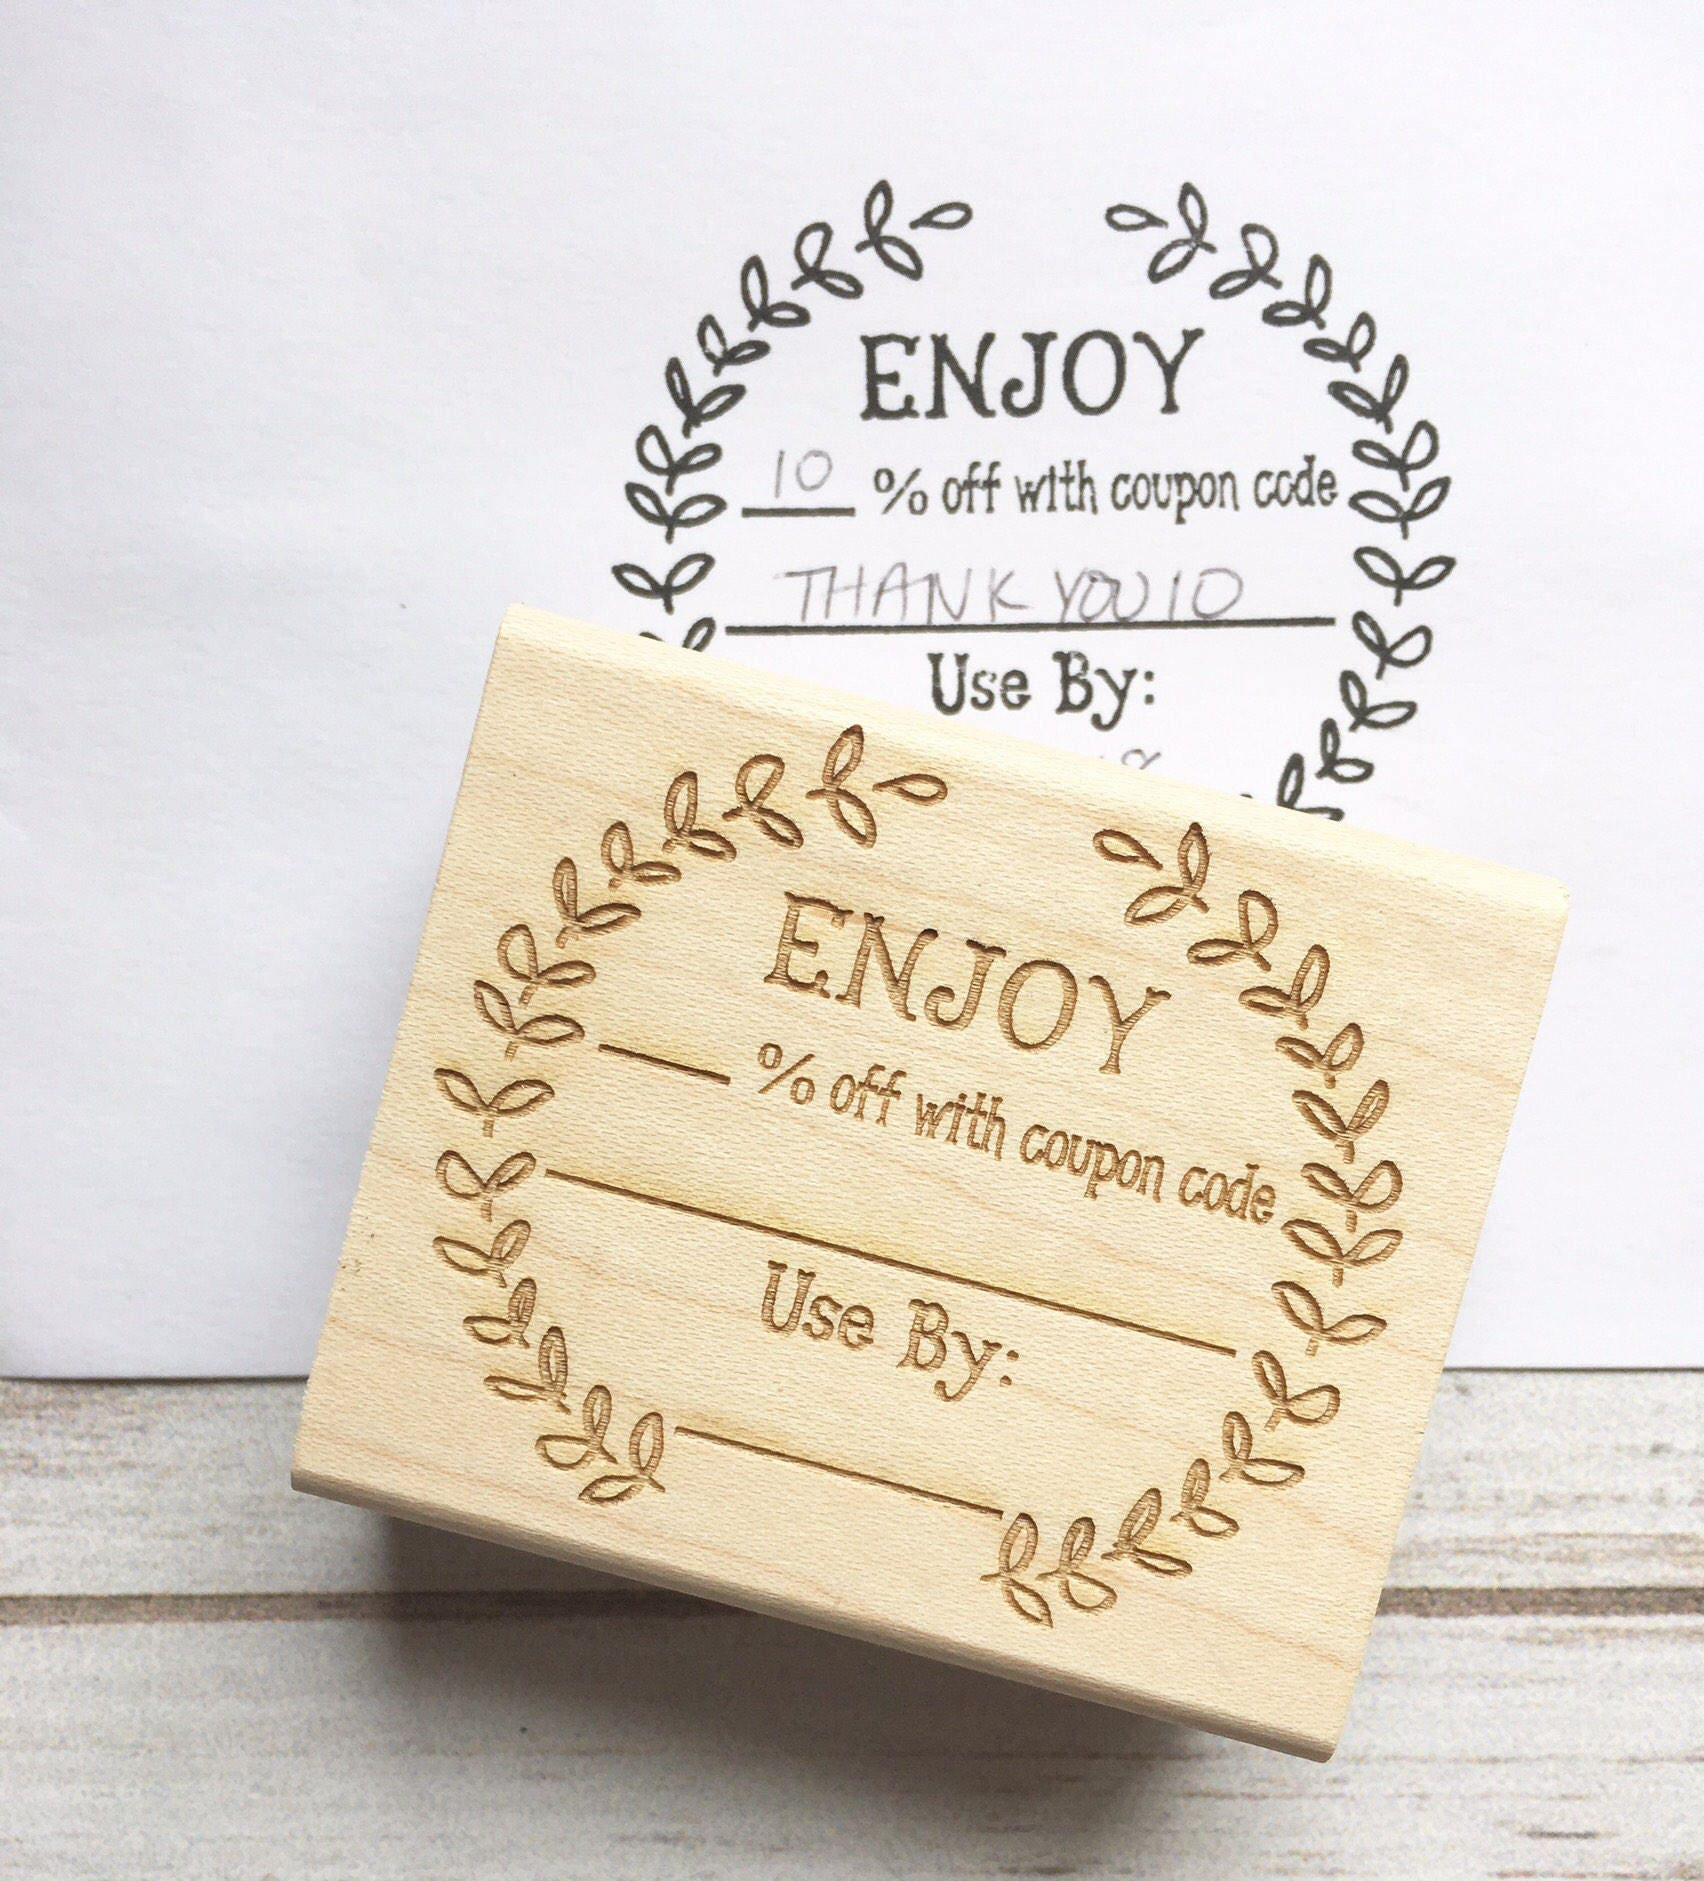 Coupon Code Stamp Enjoy Discount Promo Sale Custom Rubber Etsy